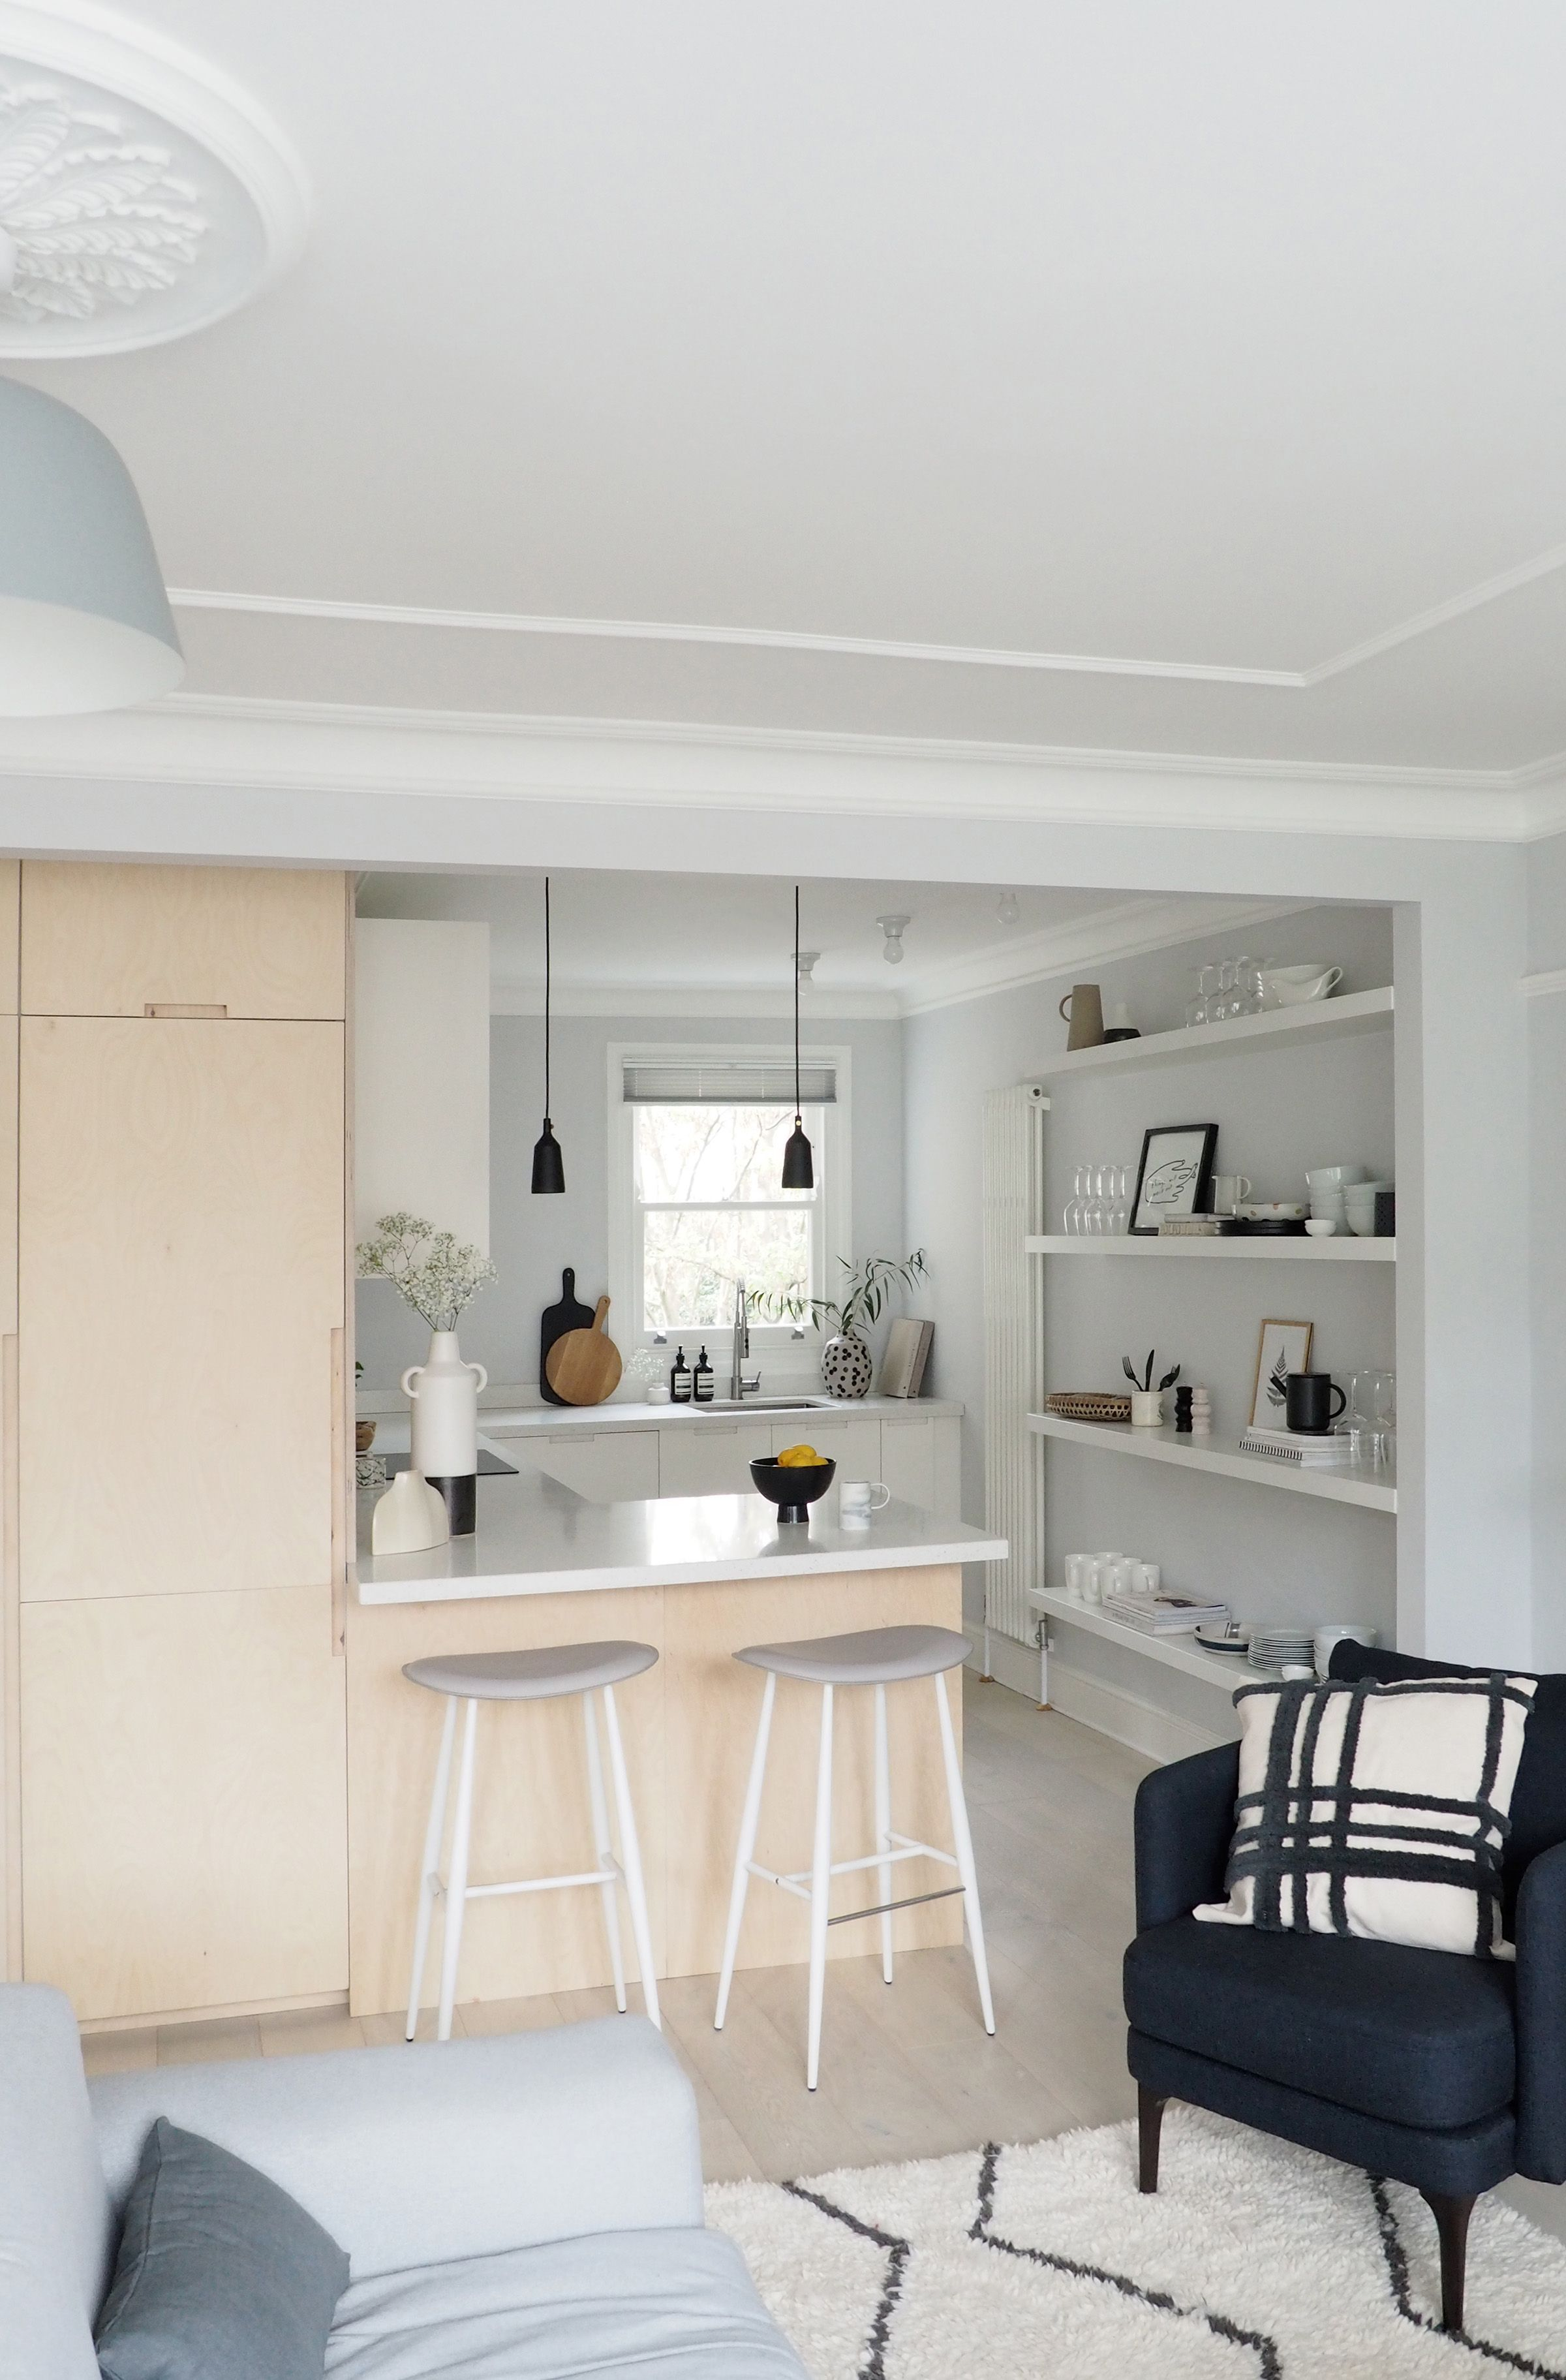 Latest Drawing Room Design: New Interior Project: A Light-filled, Minimalist Kitchen